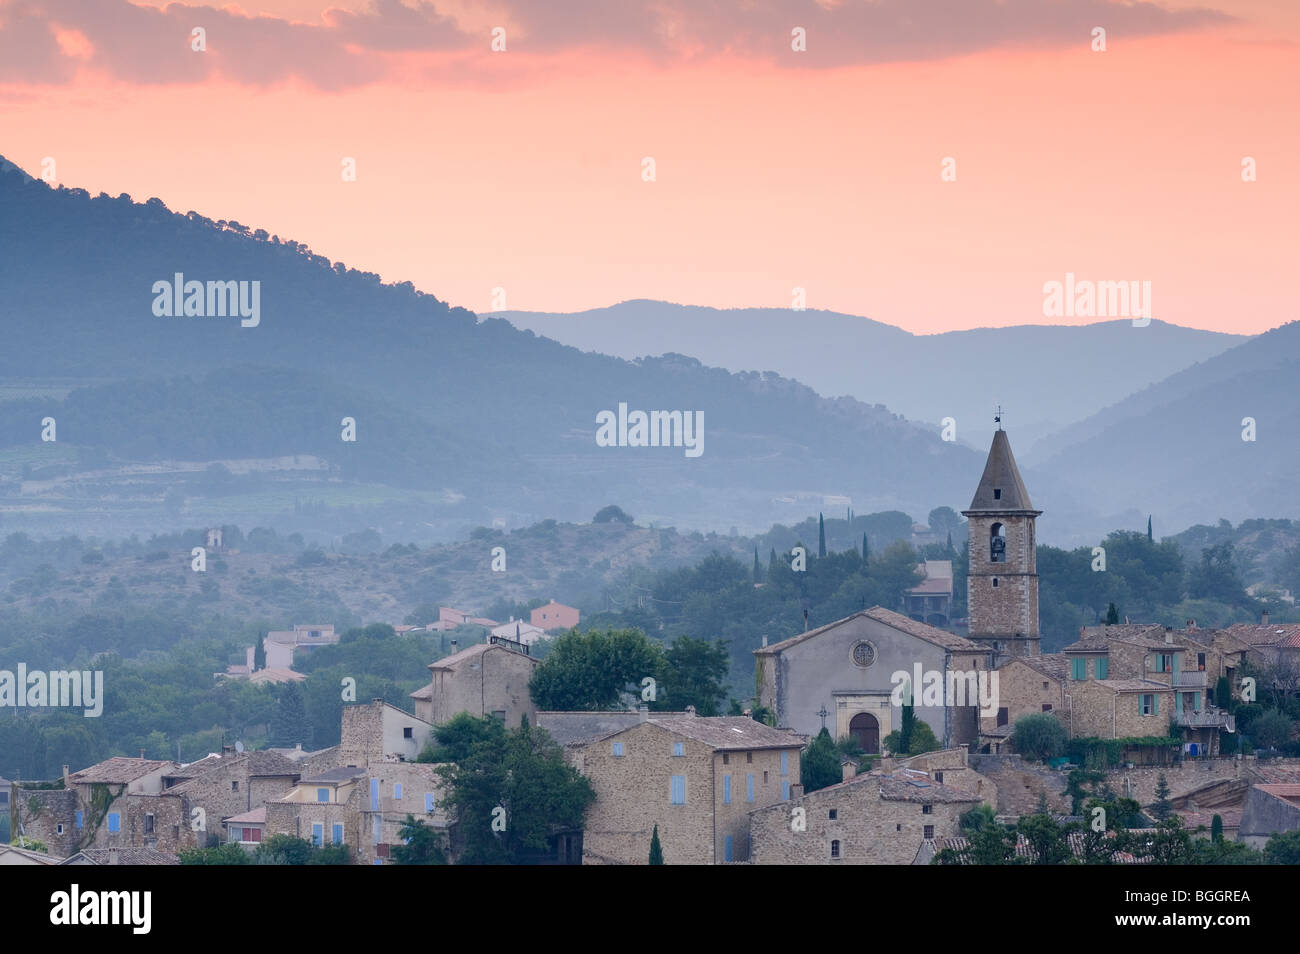 View of Village at dawn, Mirabel aux Baronnies, Provence, France, Europe - Stock Image